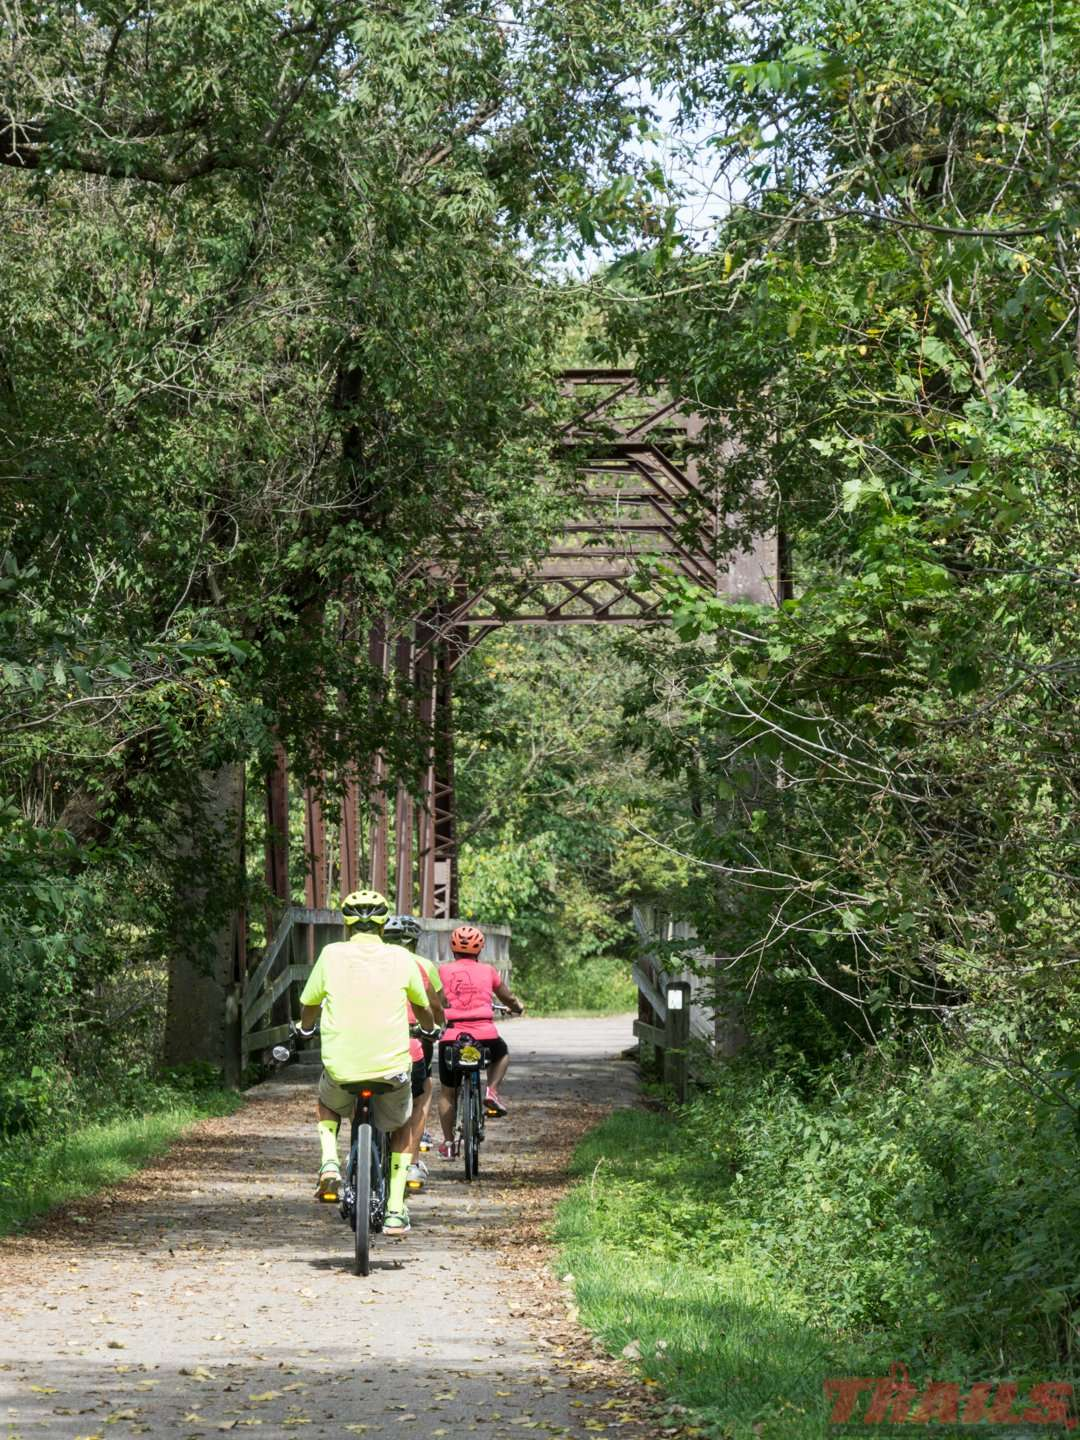 Witness to the trails' past as a railroad coridor. Some of the original bridges remain today on the Root River State Trail